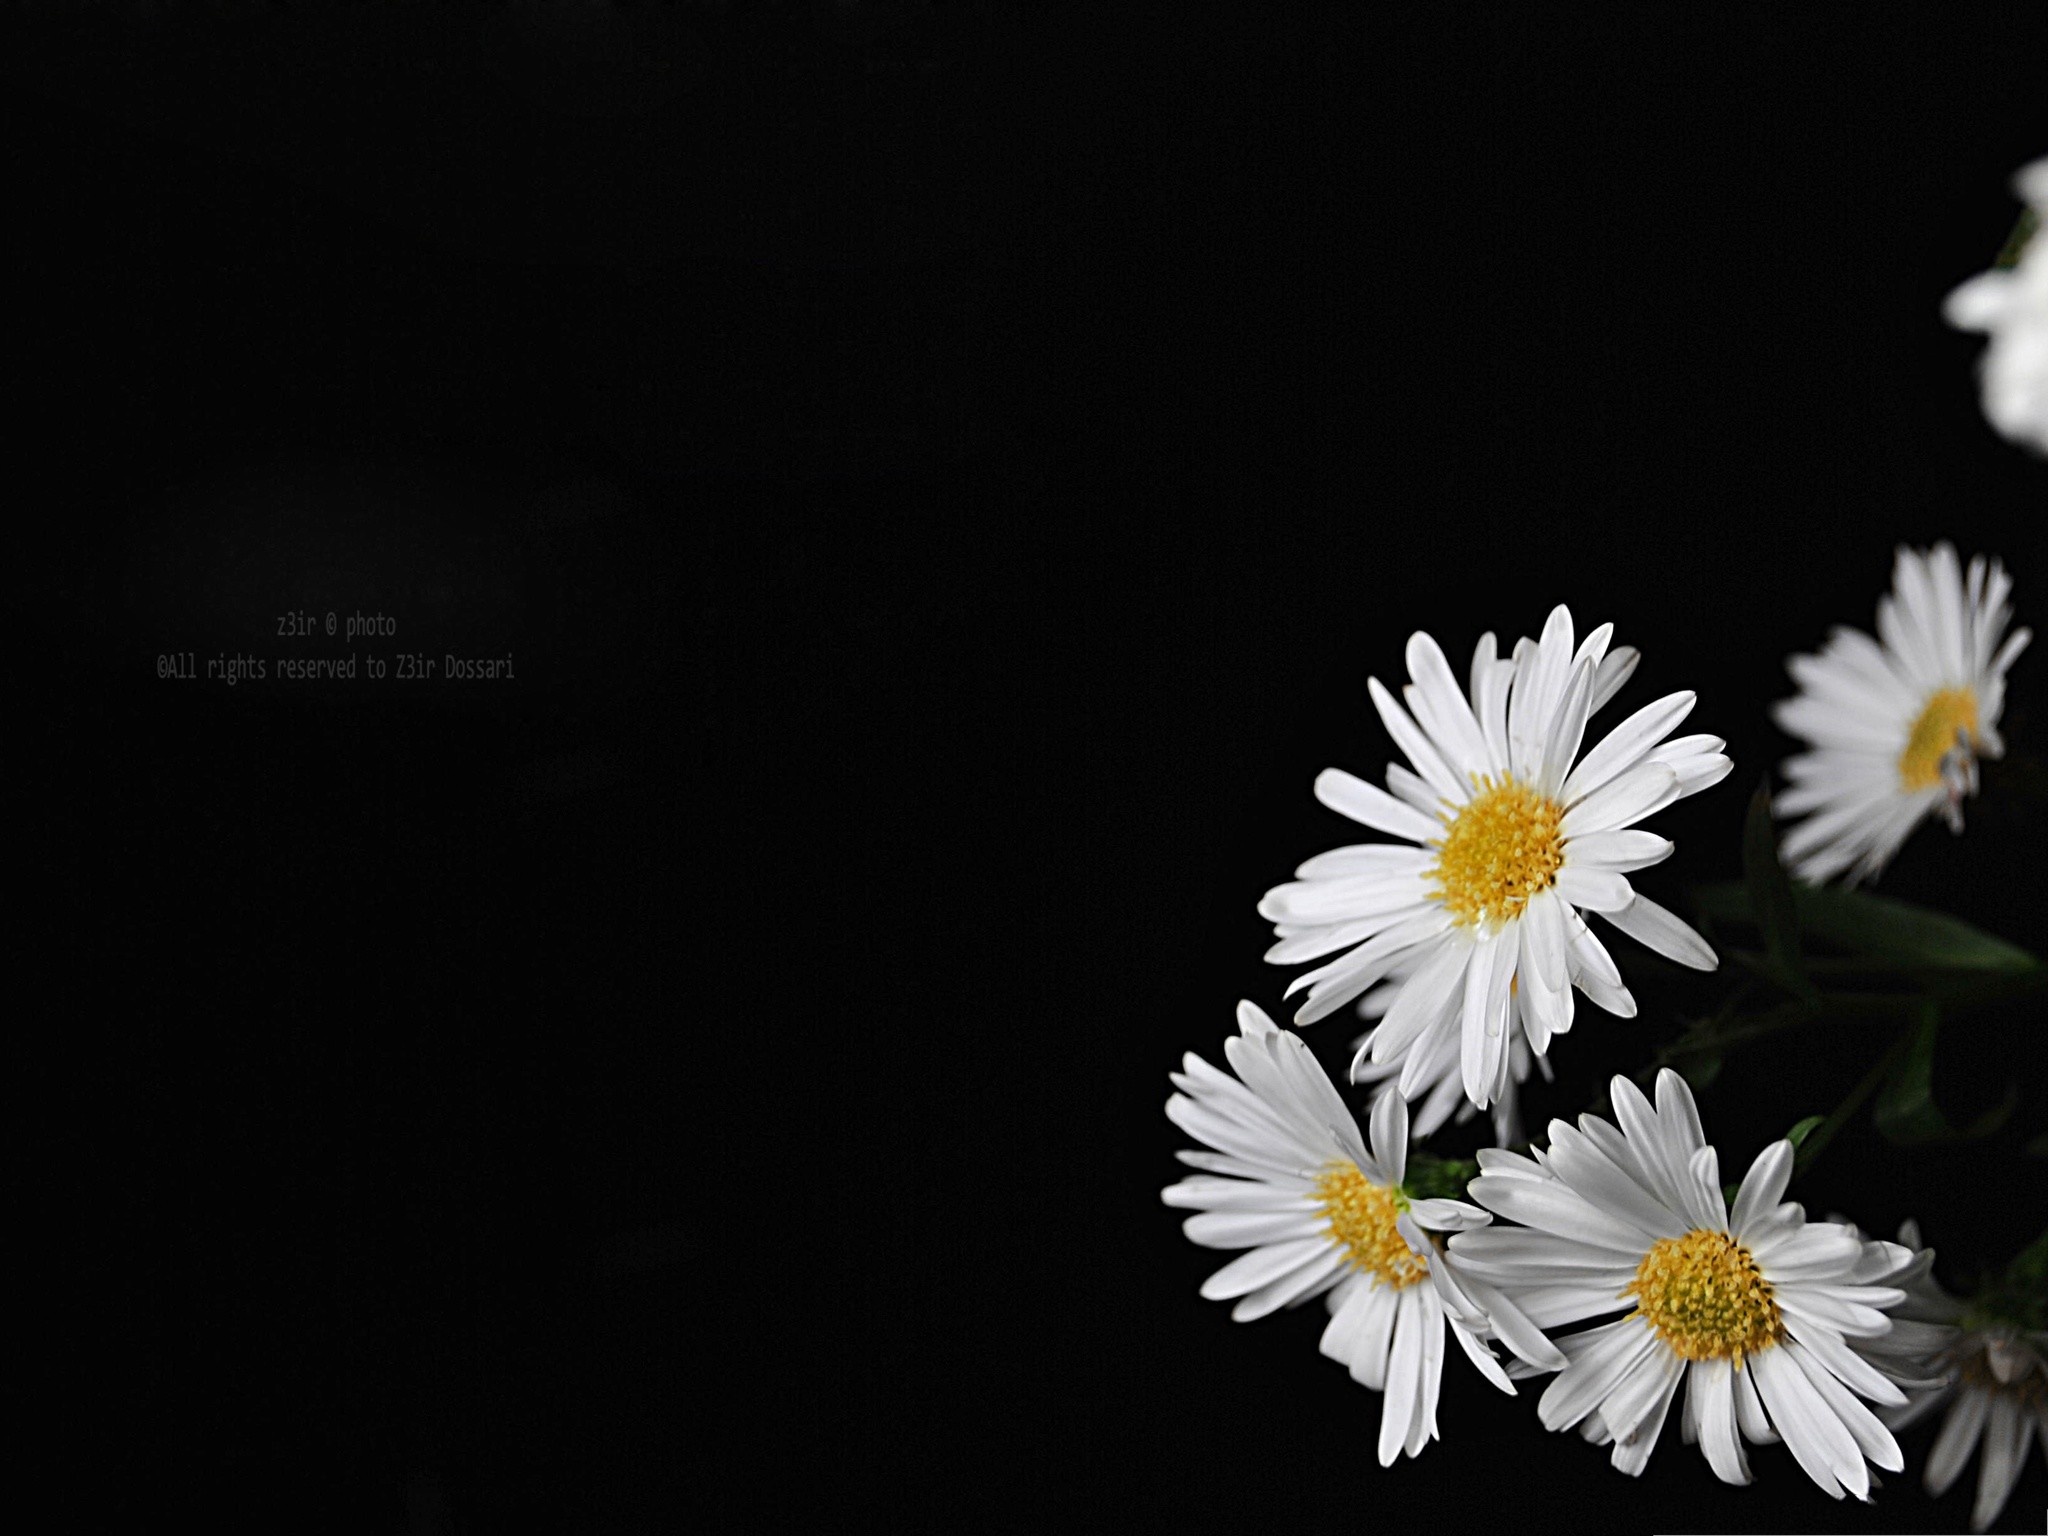 Flowers-Picture-Blooming-Little-Flowers-Put-Against .